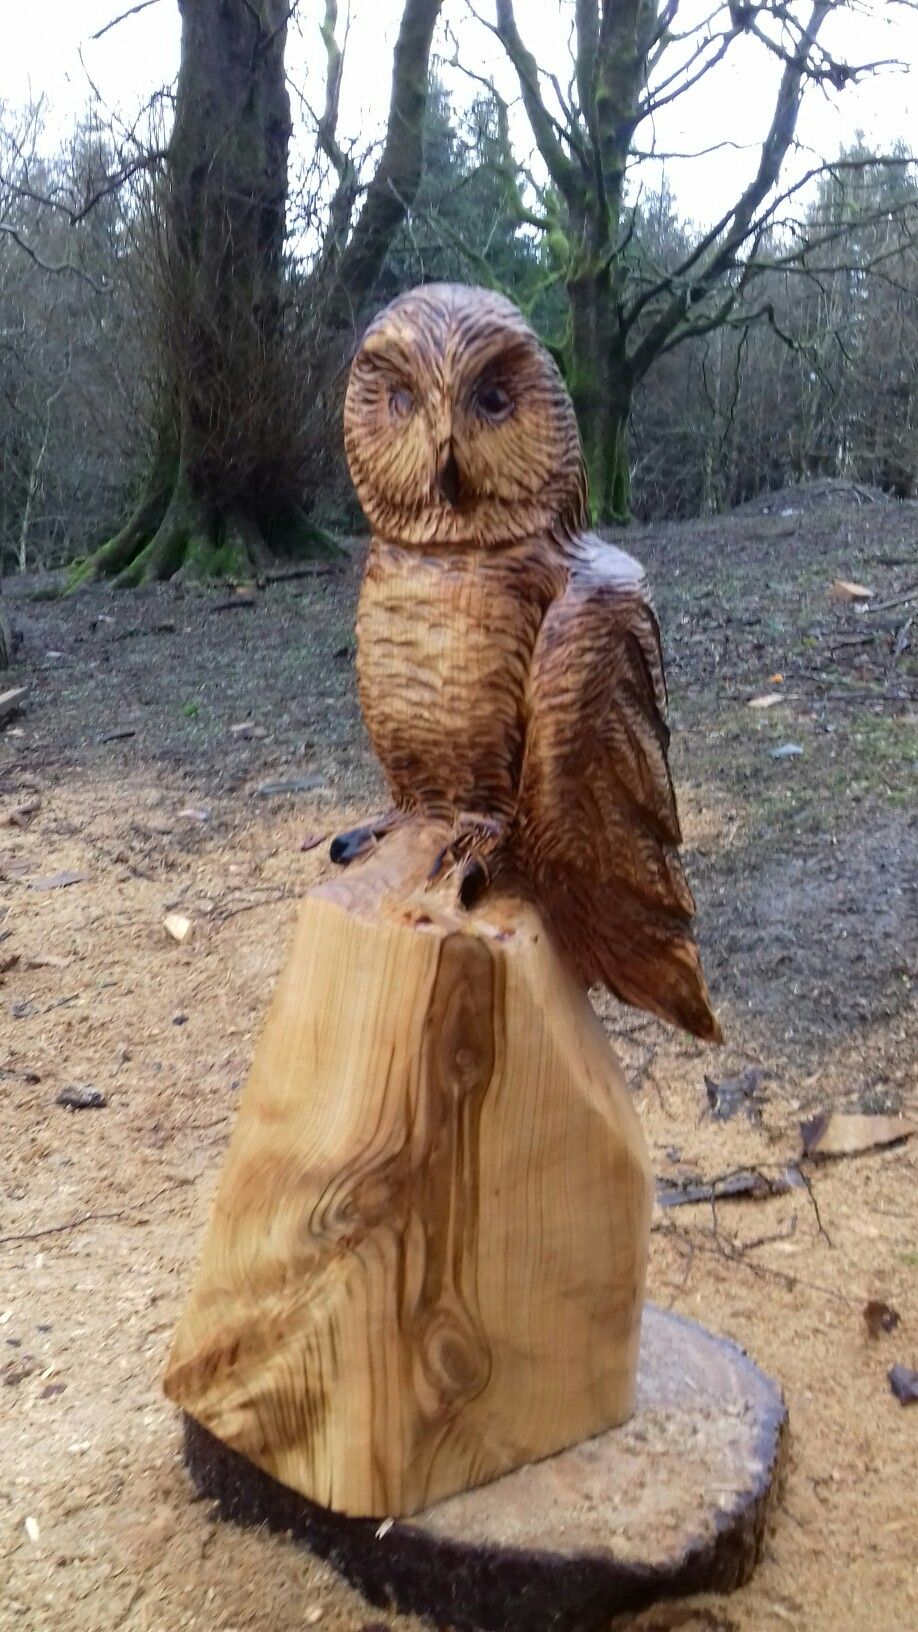 Wooden carving owl figurine decor chainsaw carving free photo